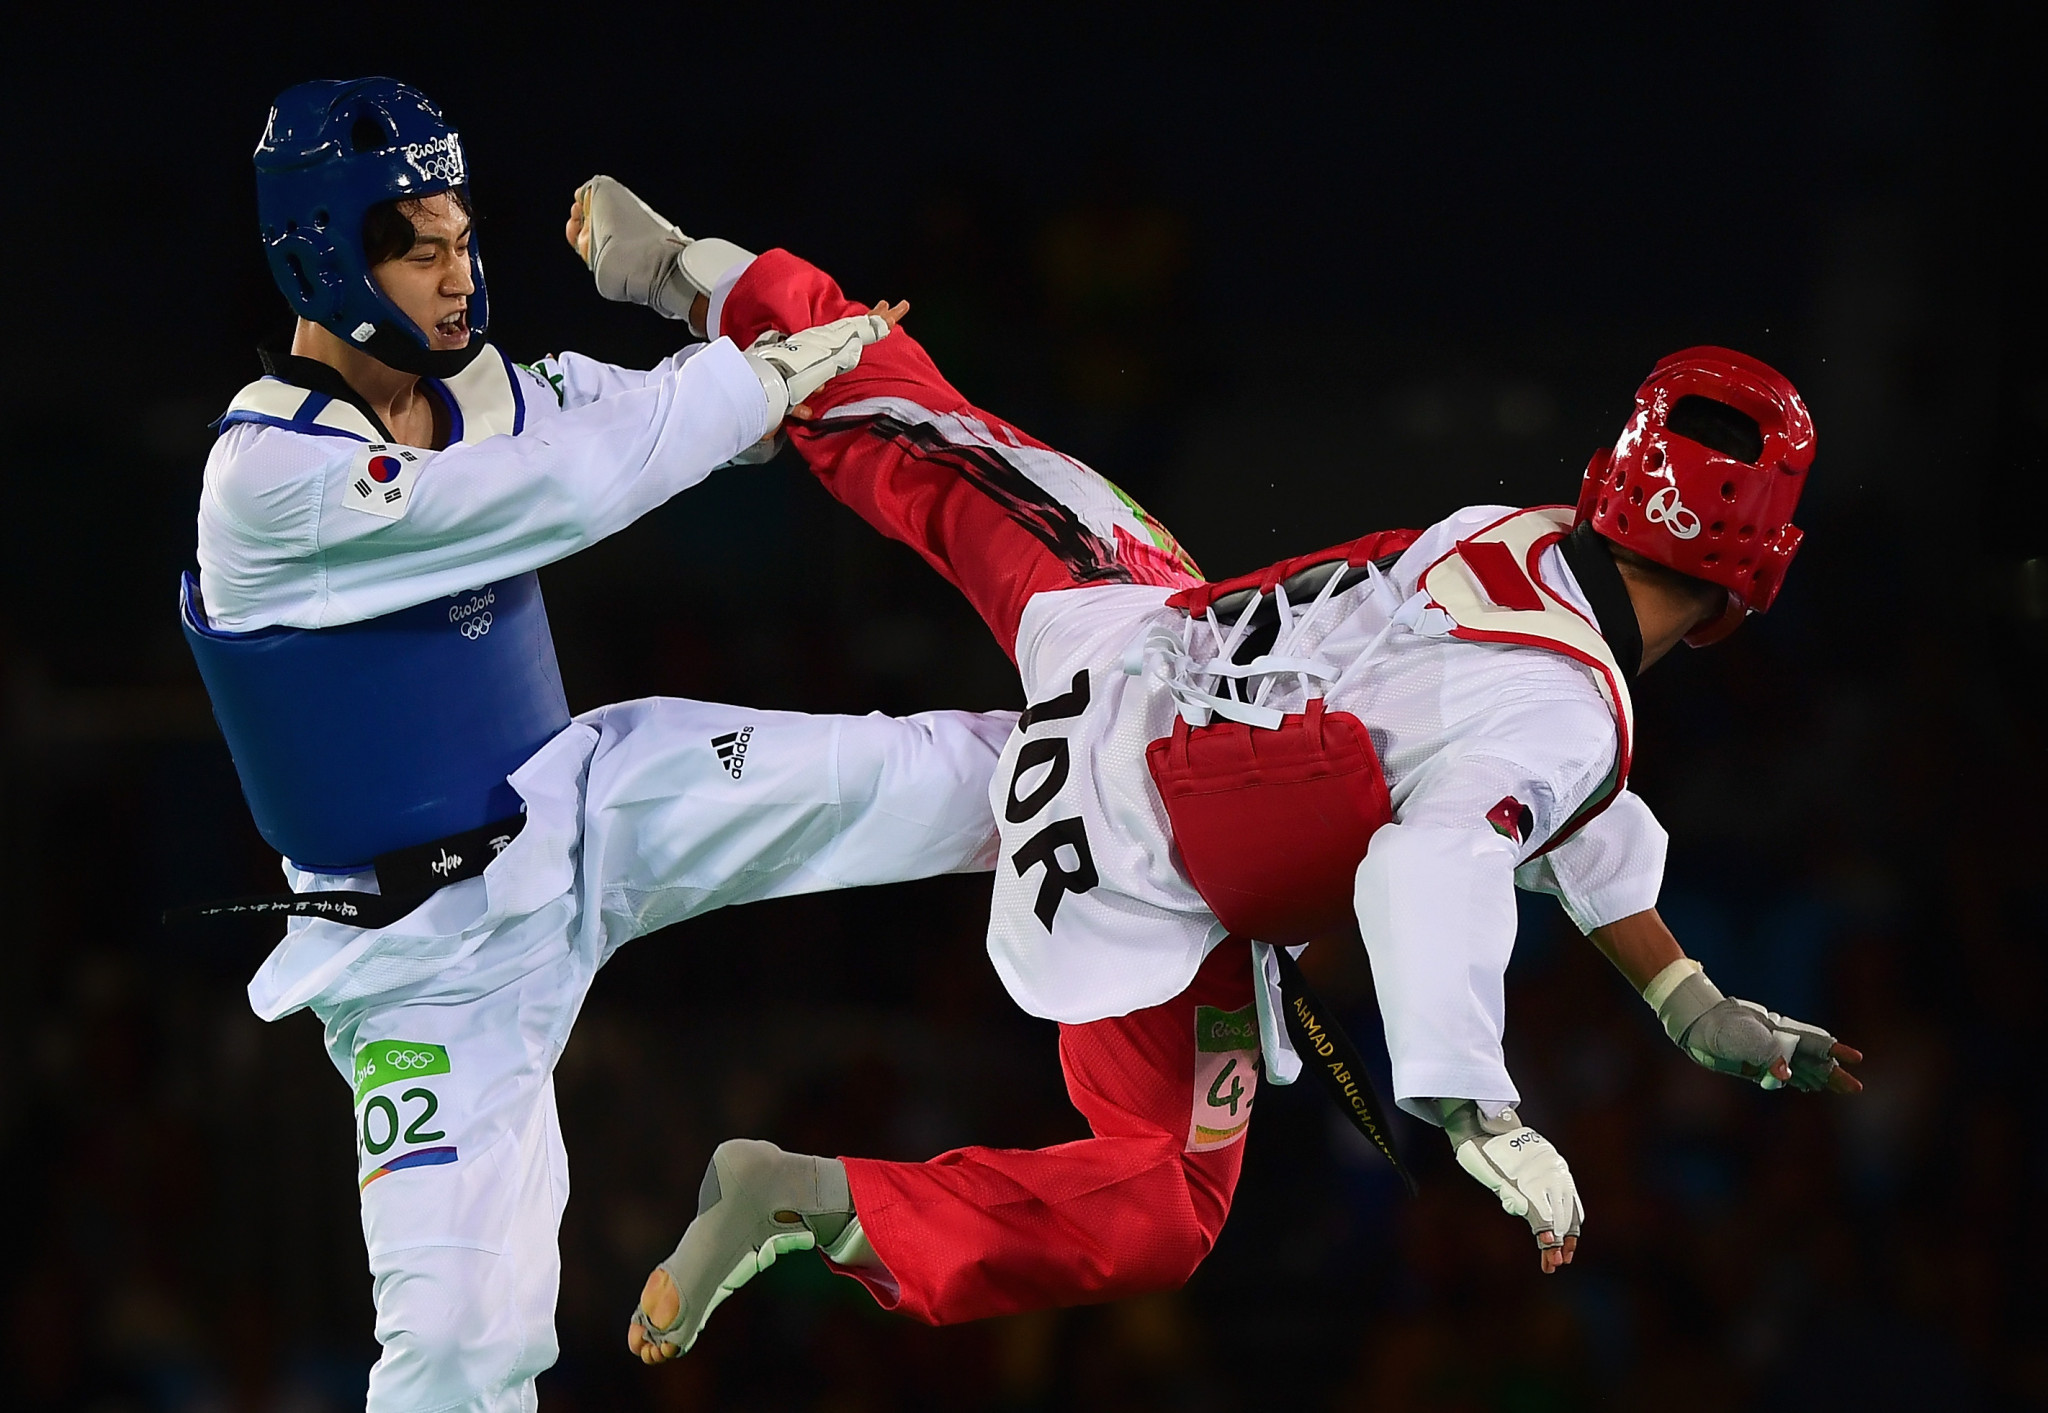 Jordan has witnessed a taekwondo boom since Ahmed Abughaush's Olympic gold medal ©Getty Images